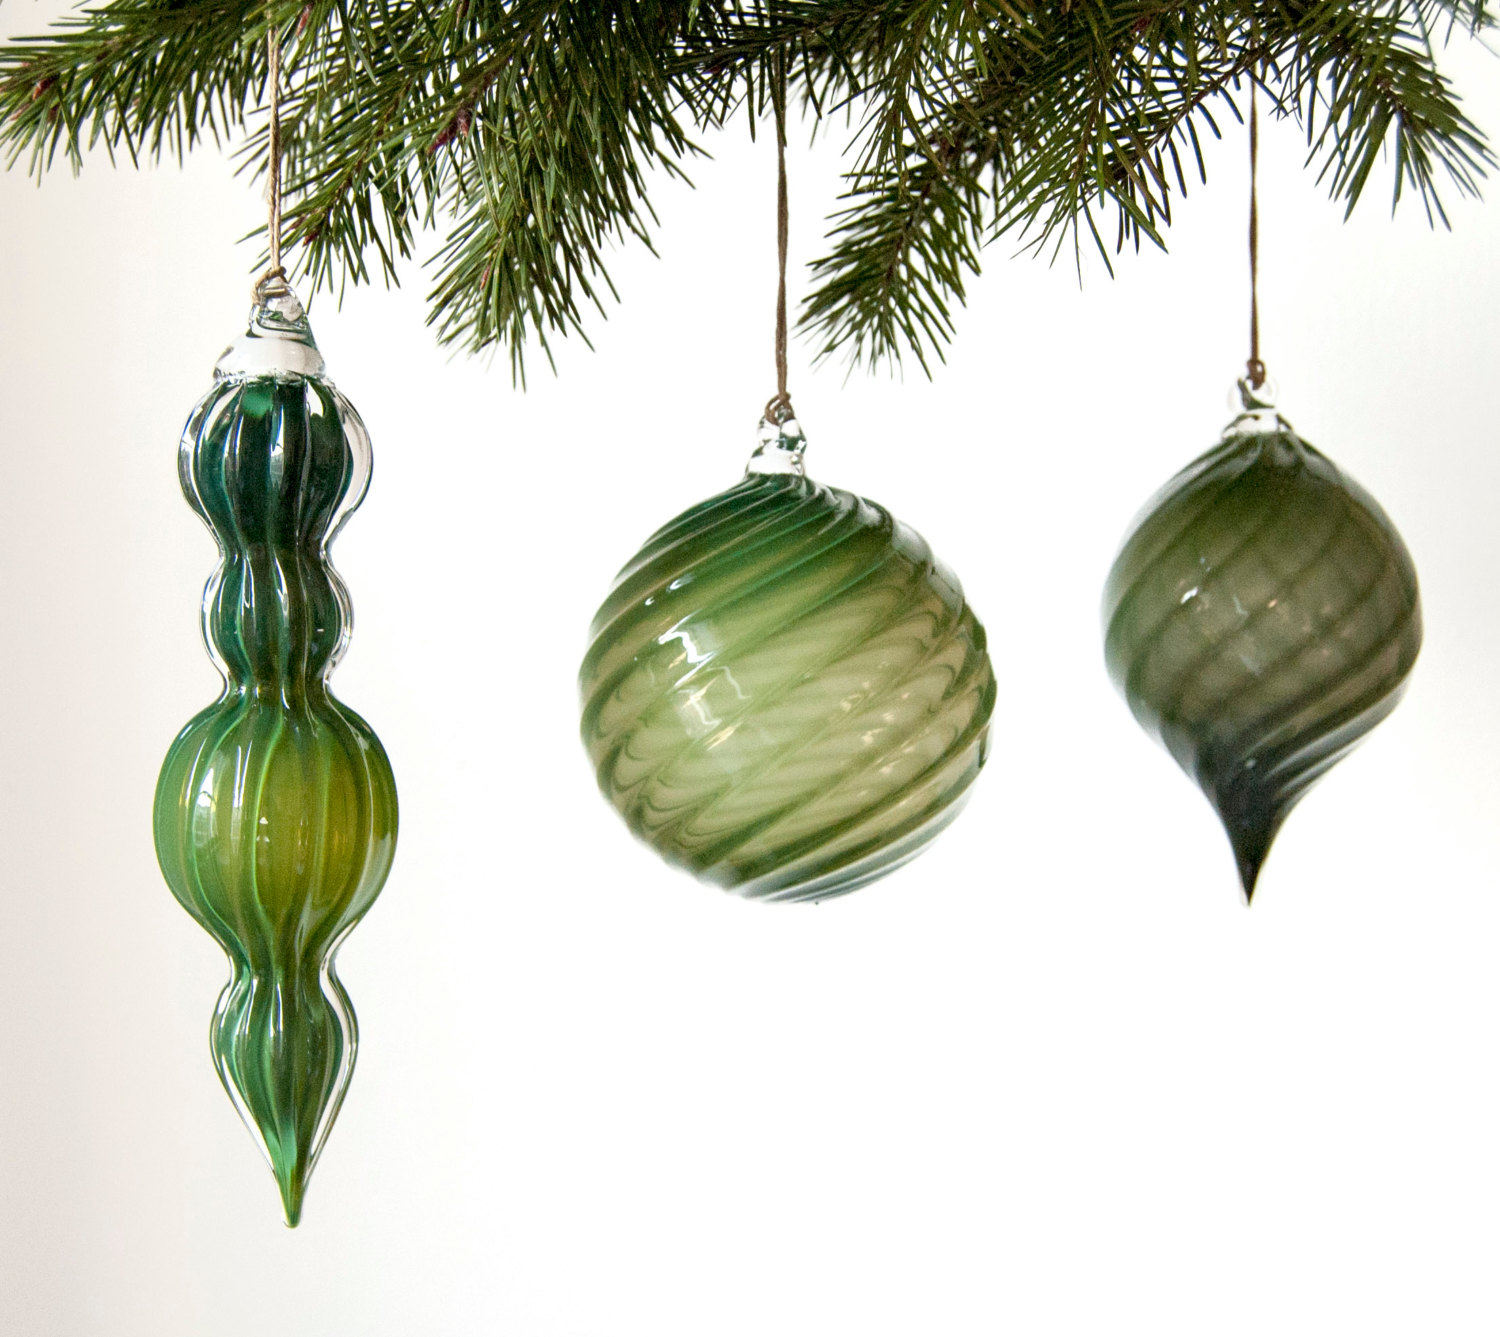 Handmade glass christmas ornaments - 2 Set Of Dark Green Holiday Oranaments